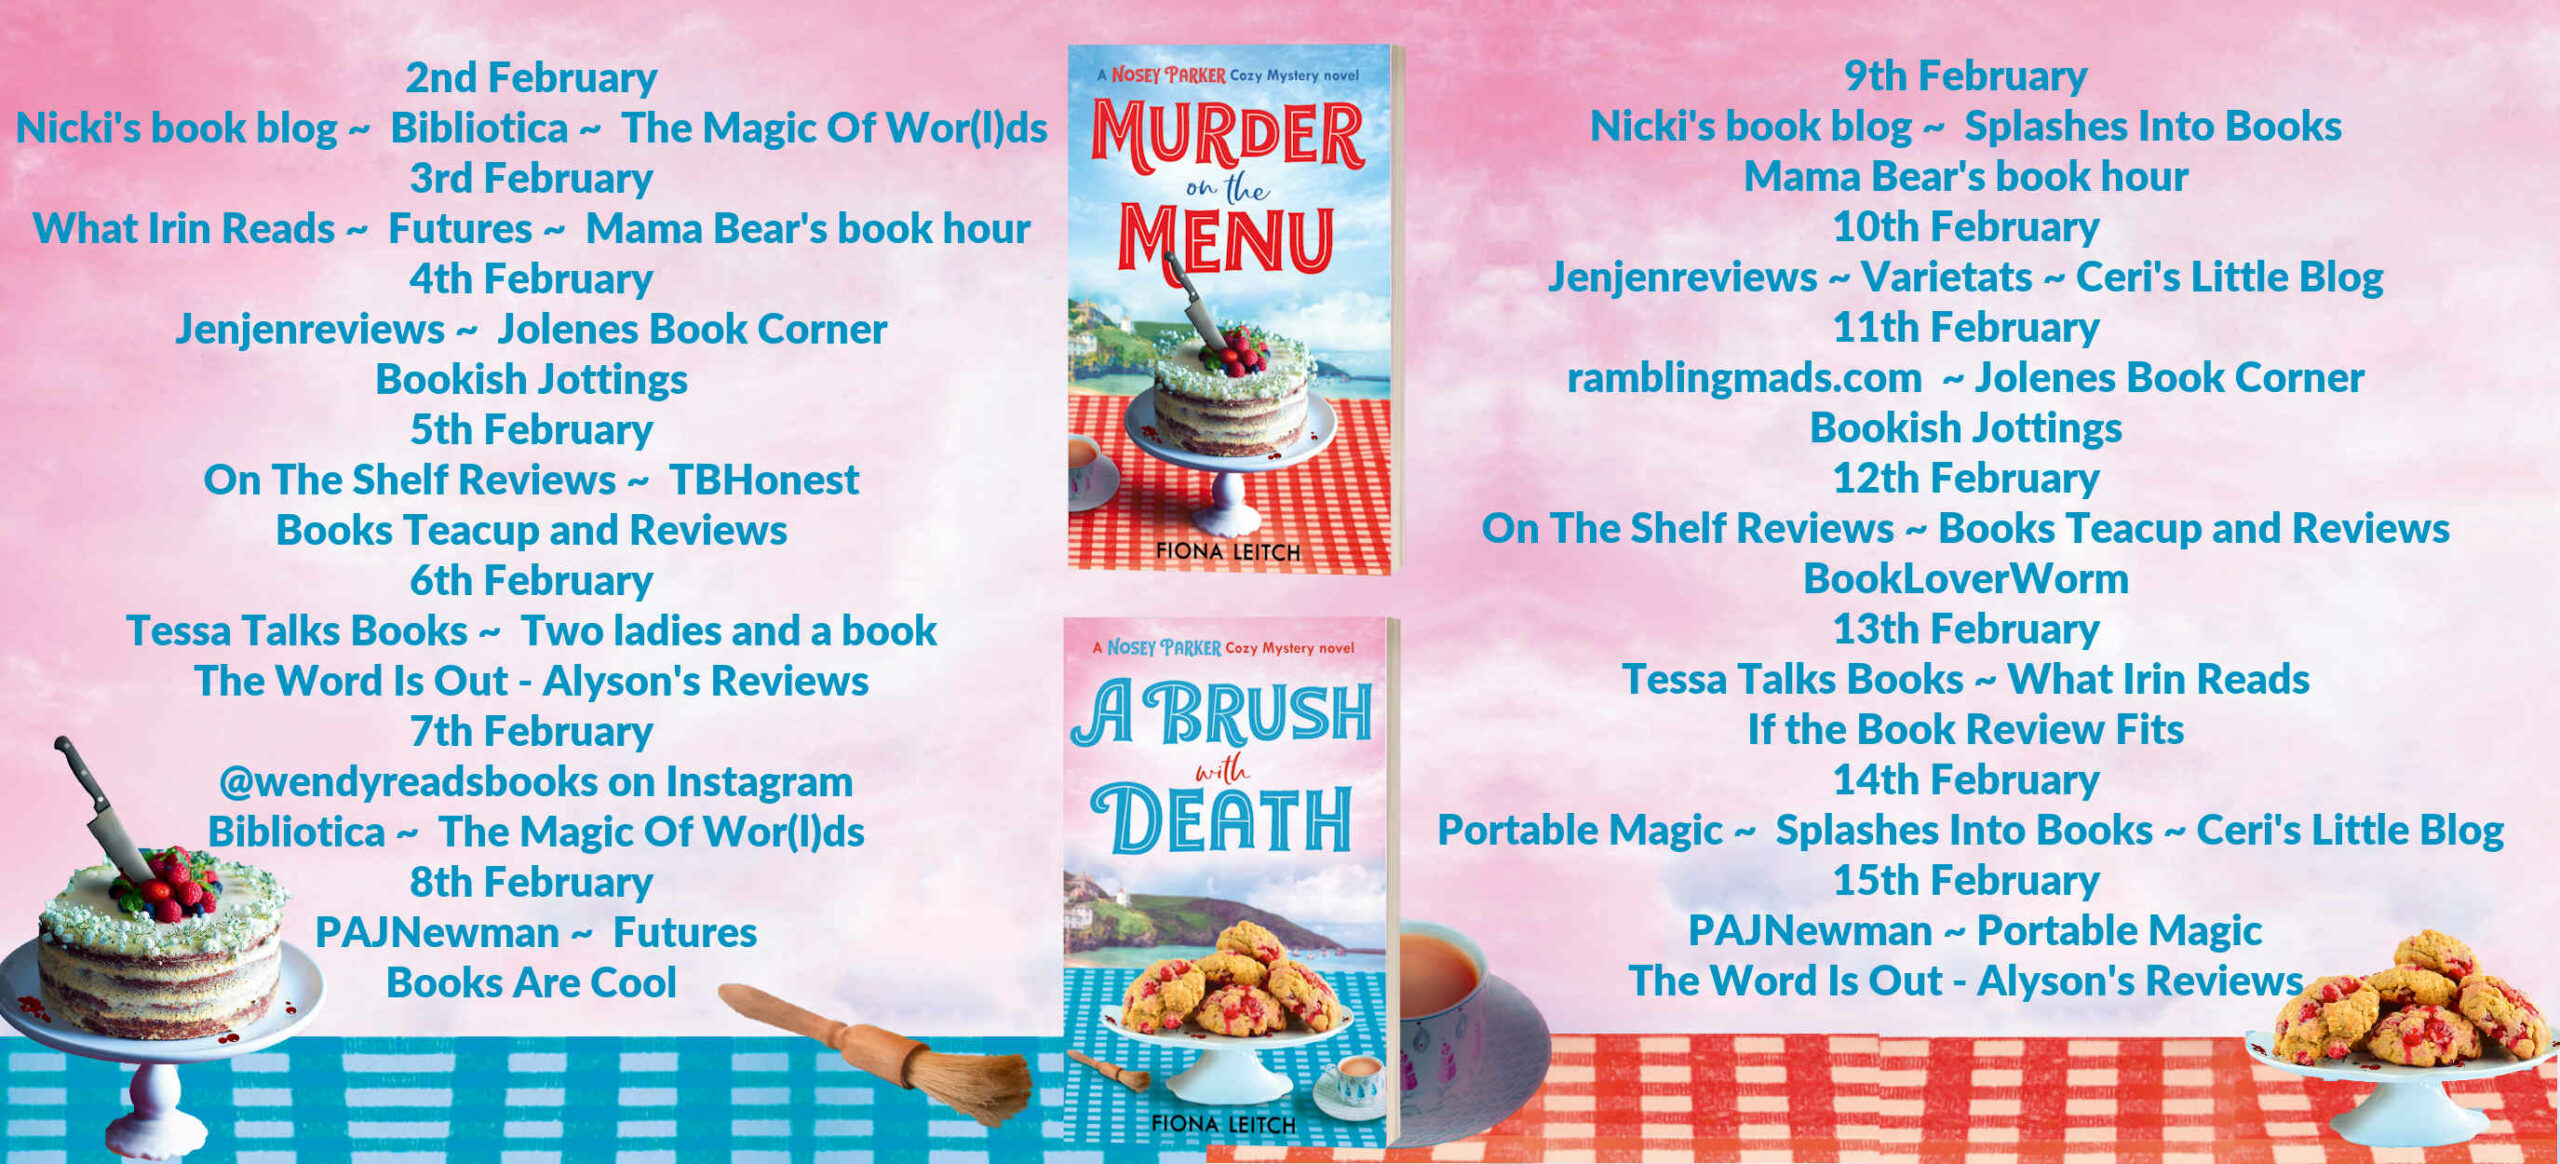 Review: Murder on the Menu, by Fiona Leitch